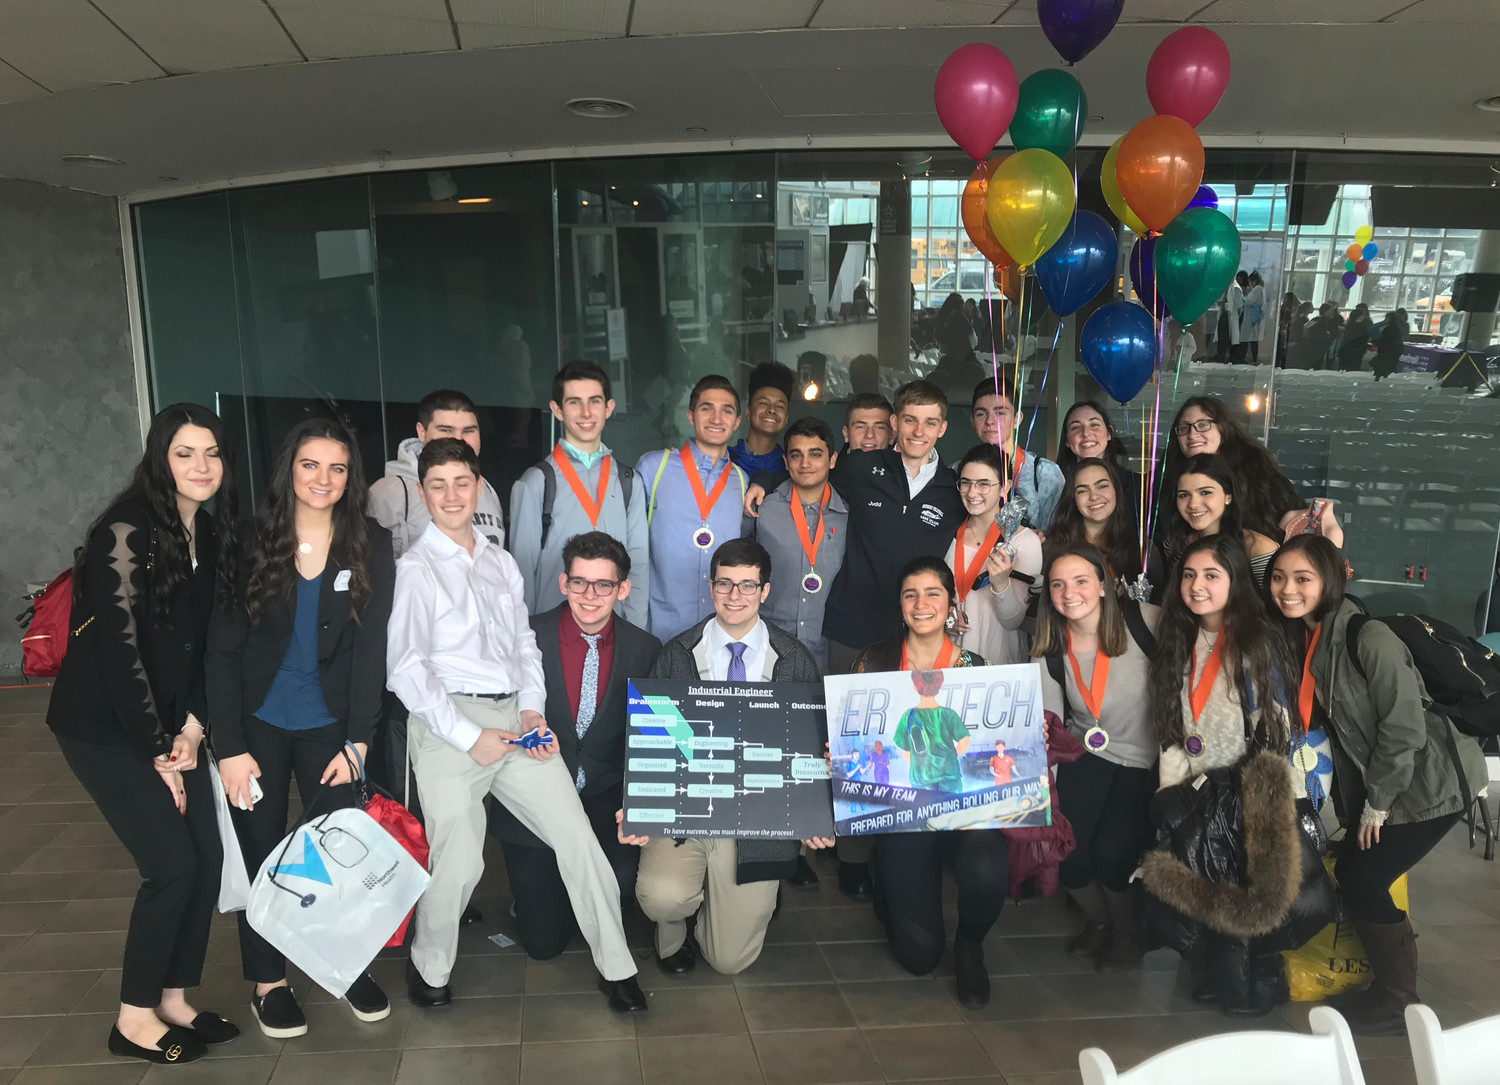 Two teams from John F. Kennedy High School presented in the Northwell Health SPARK Challenge competition on April 12.